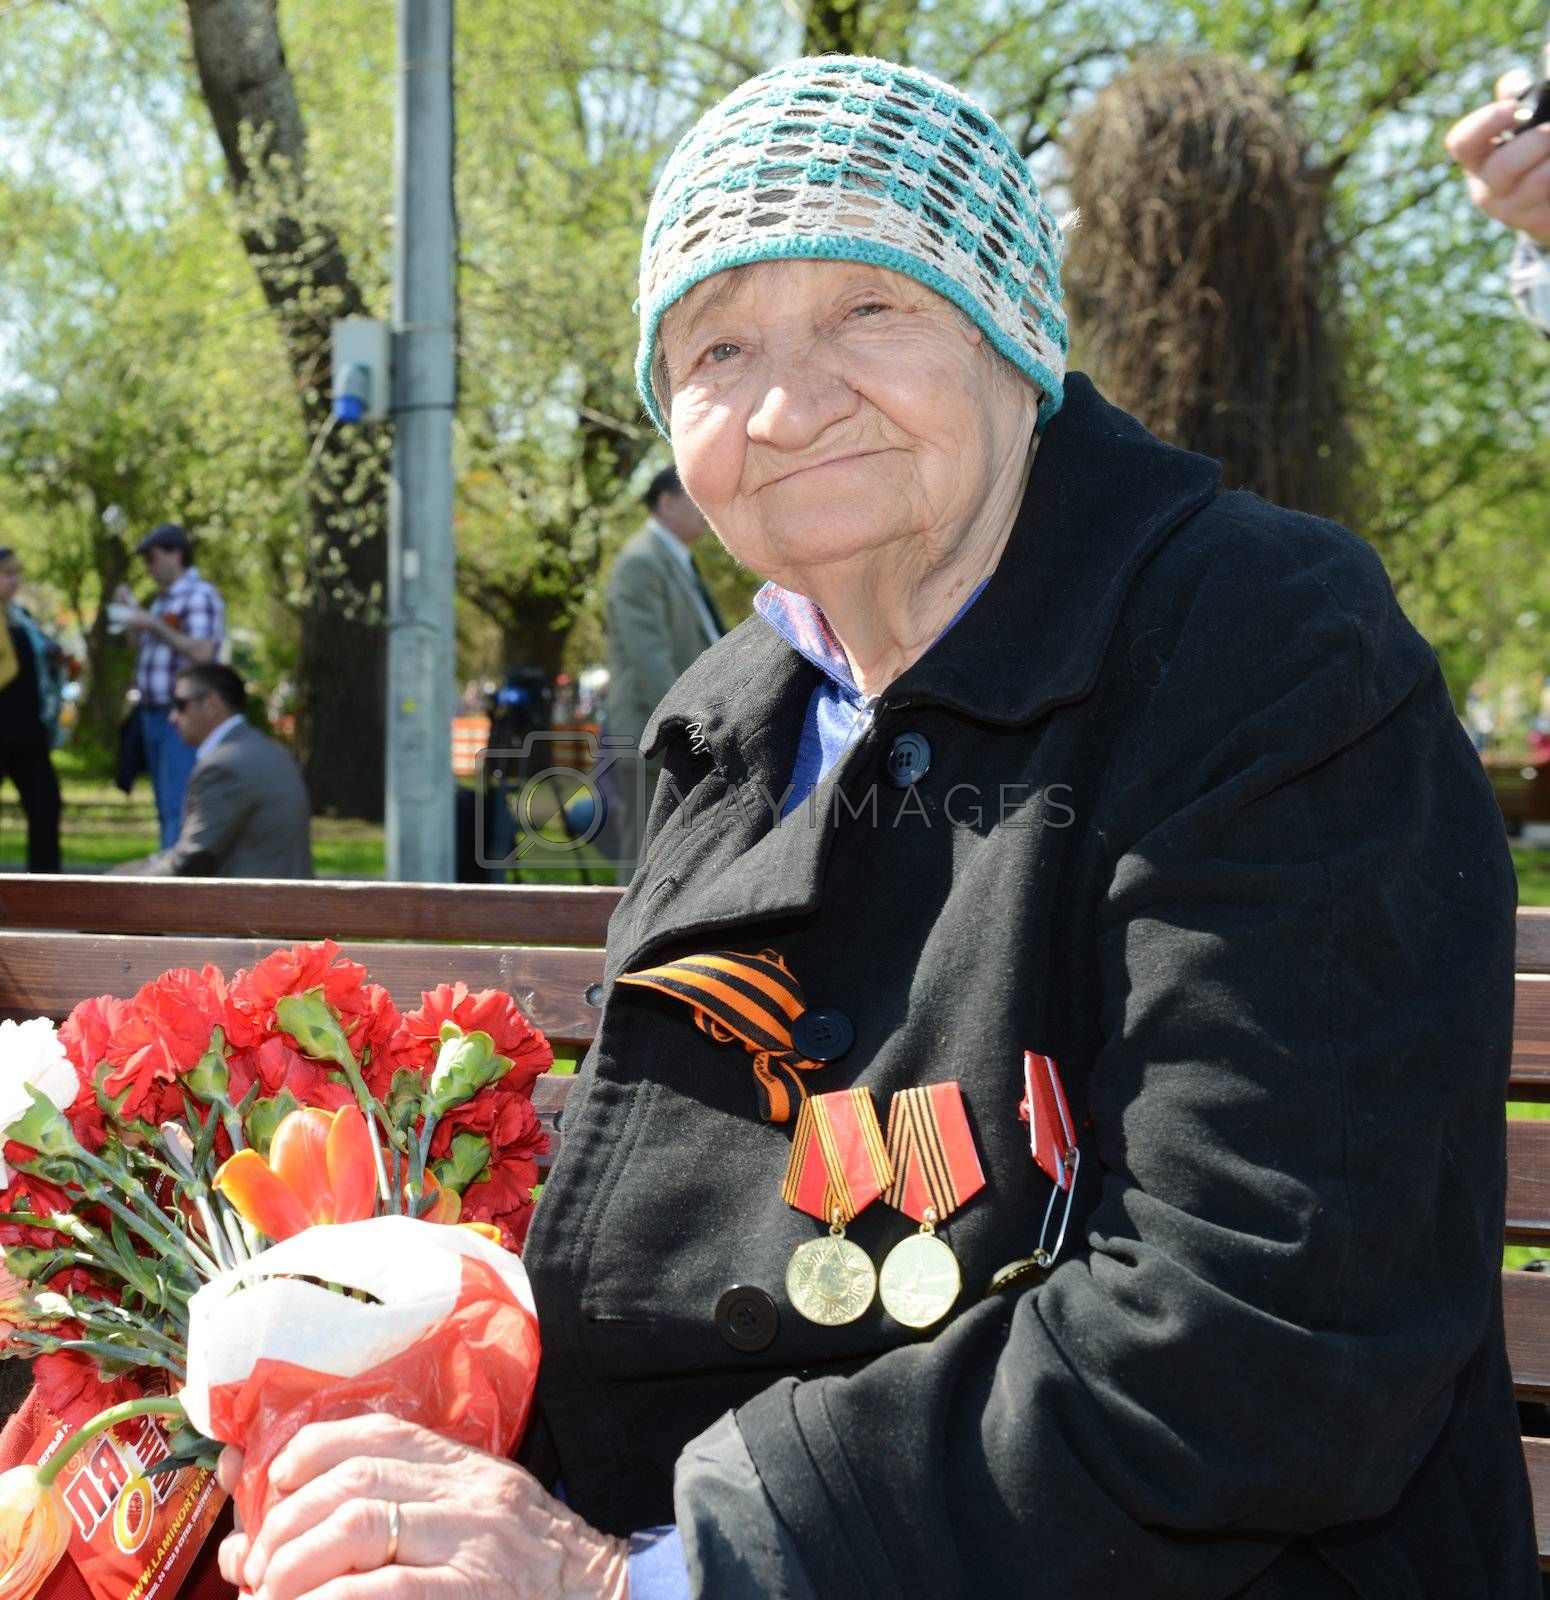 Moscow, Russia - May 9, 2013: Old woman veteran of WWII  bearing bunch of flowers during festivities devoted to 68th anniversary of Victory Day.